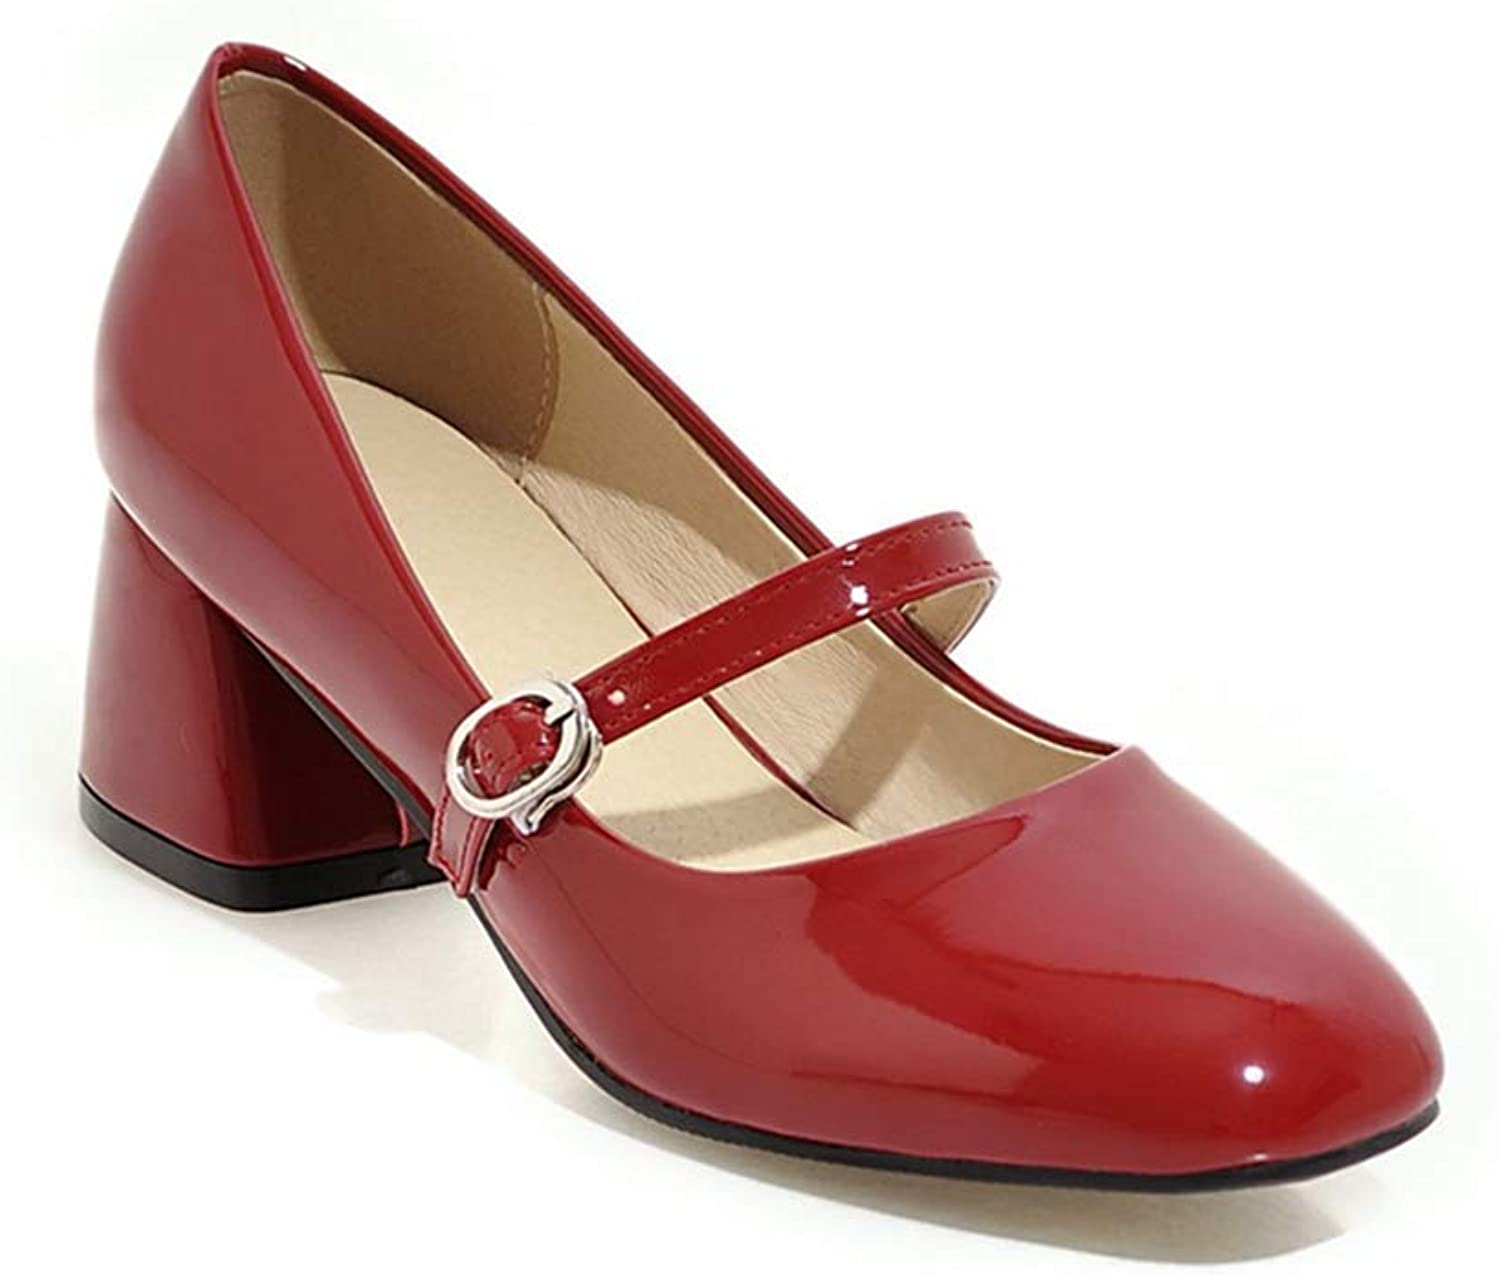 Beautiful - Fashion Women's Mary Jane Oxford Pump Square Toe Slip On Mid Heel Leather Retro Uniform Dress Loafer shoes